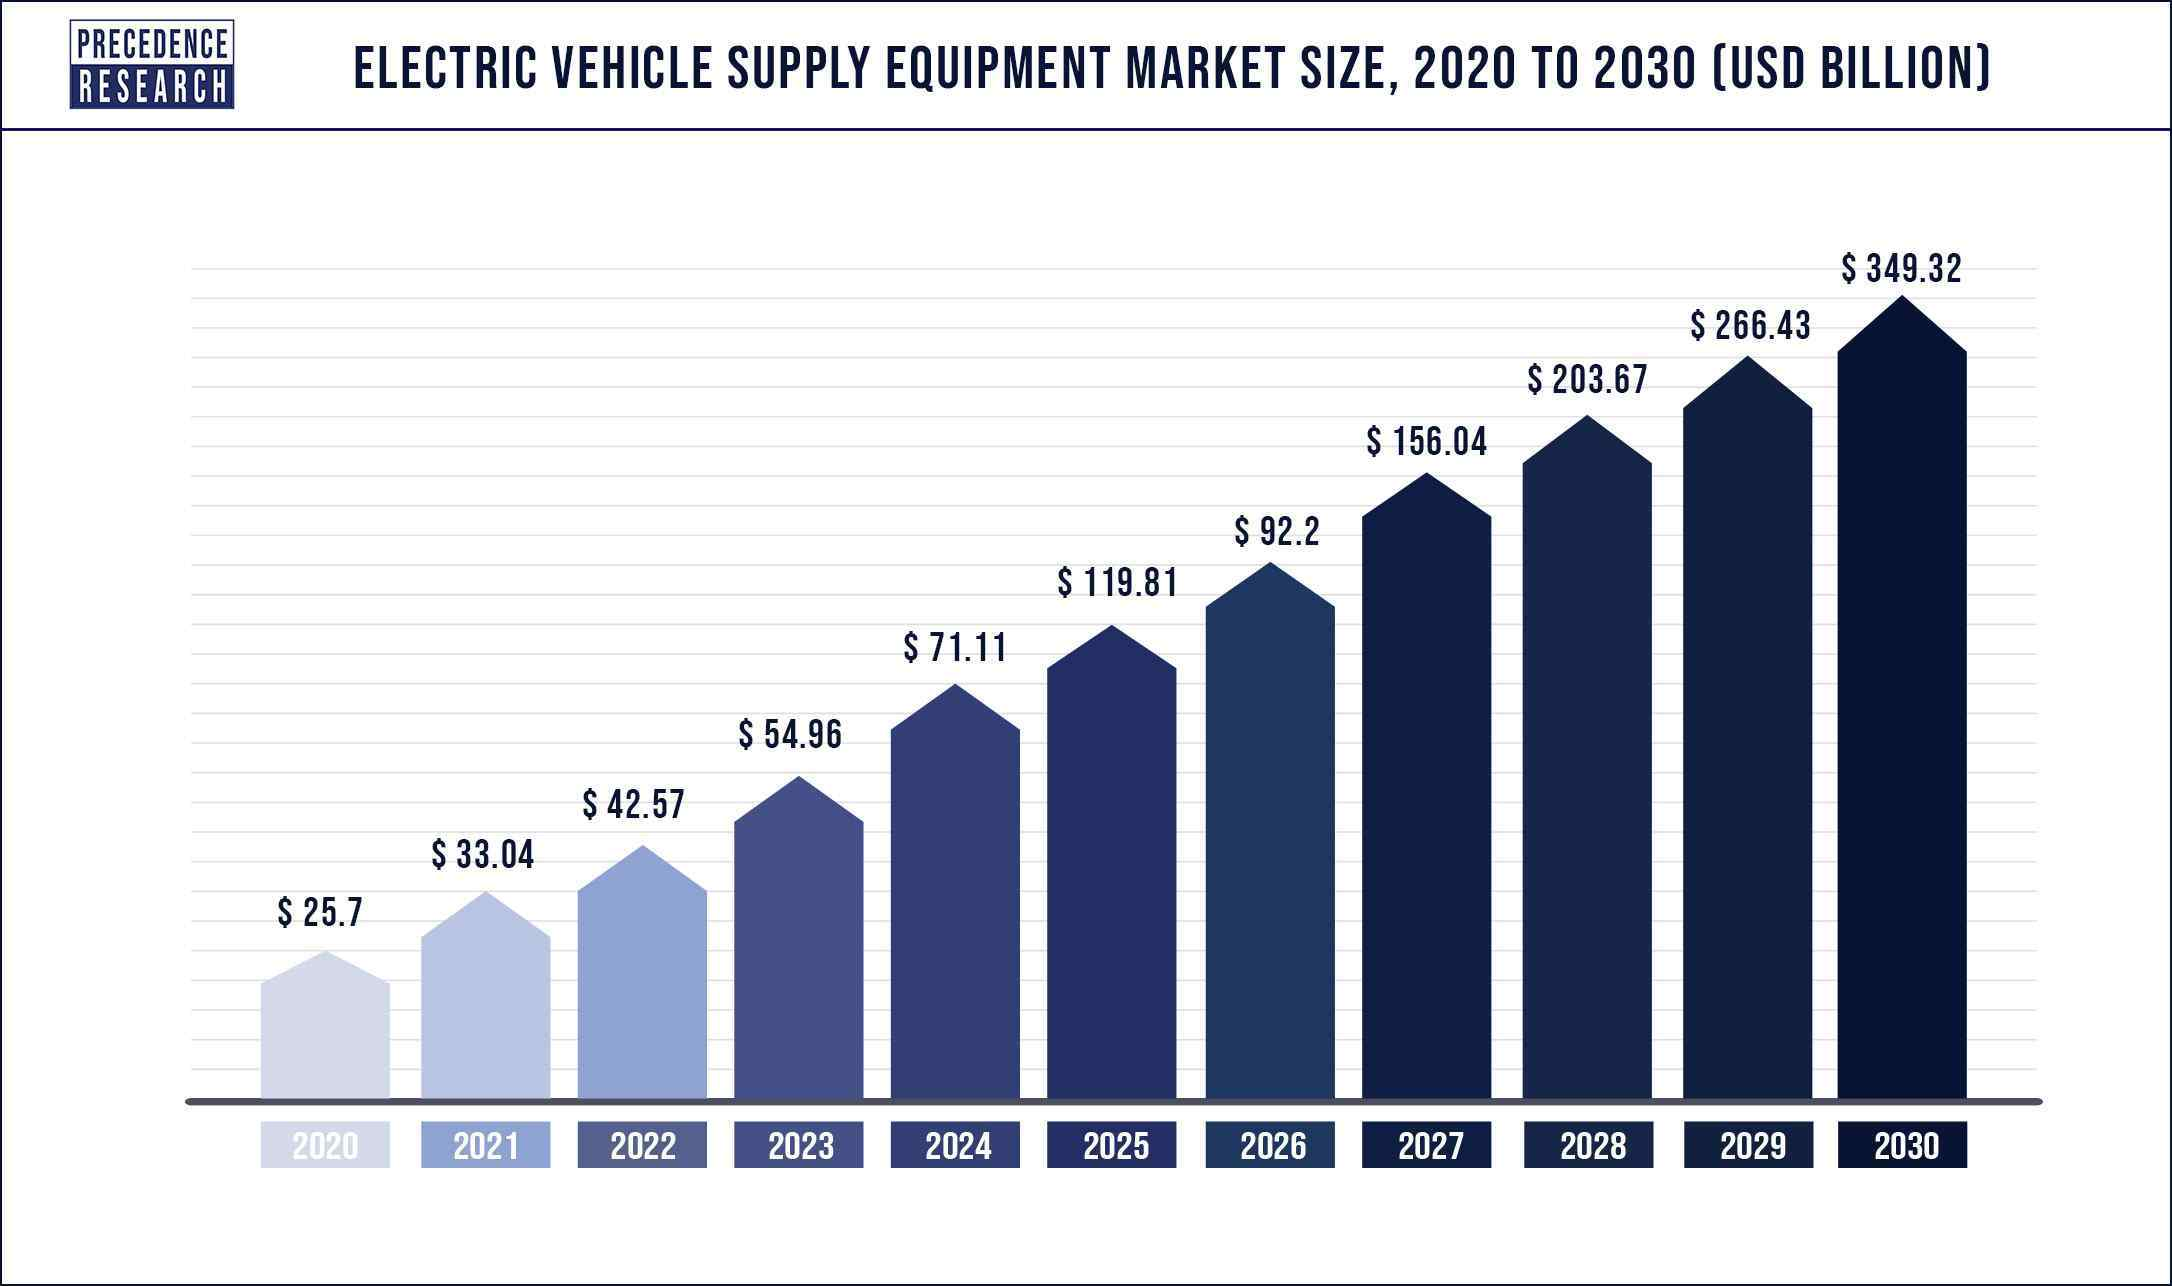 Electric Vehicle Supply Equipment Market Size 2020 to 2030